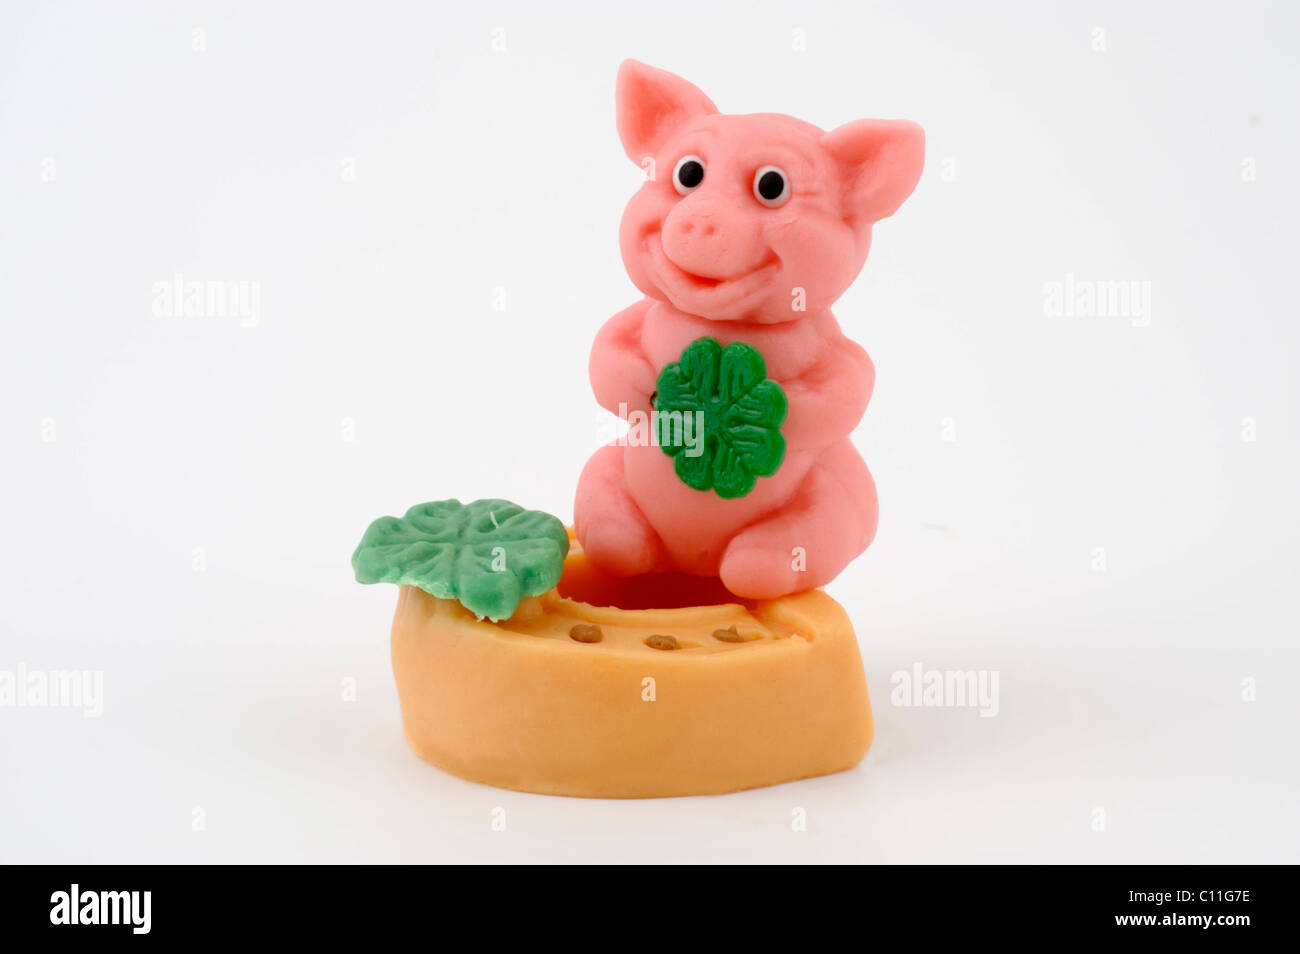 Lucky charm, good luck charm, marzipan, pig, horse shoe, four leaf clover, New Year, New Year's Eve - Stock Image